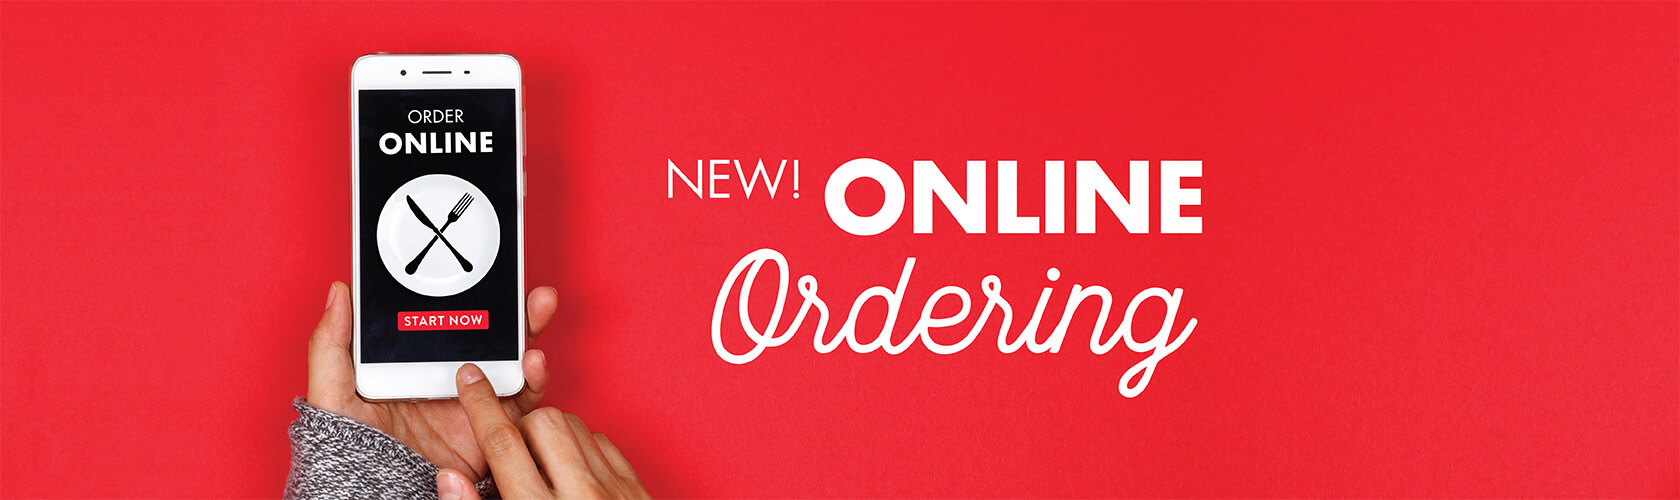 Online ordering now available!